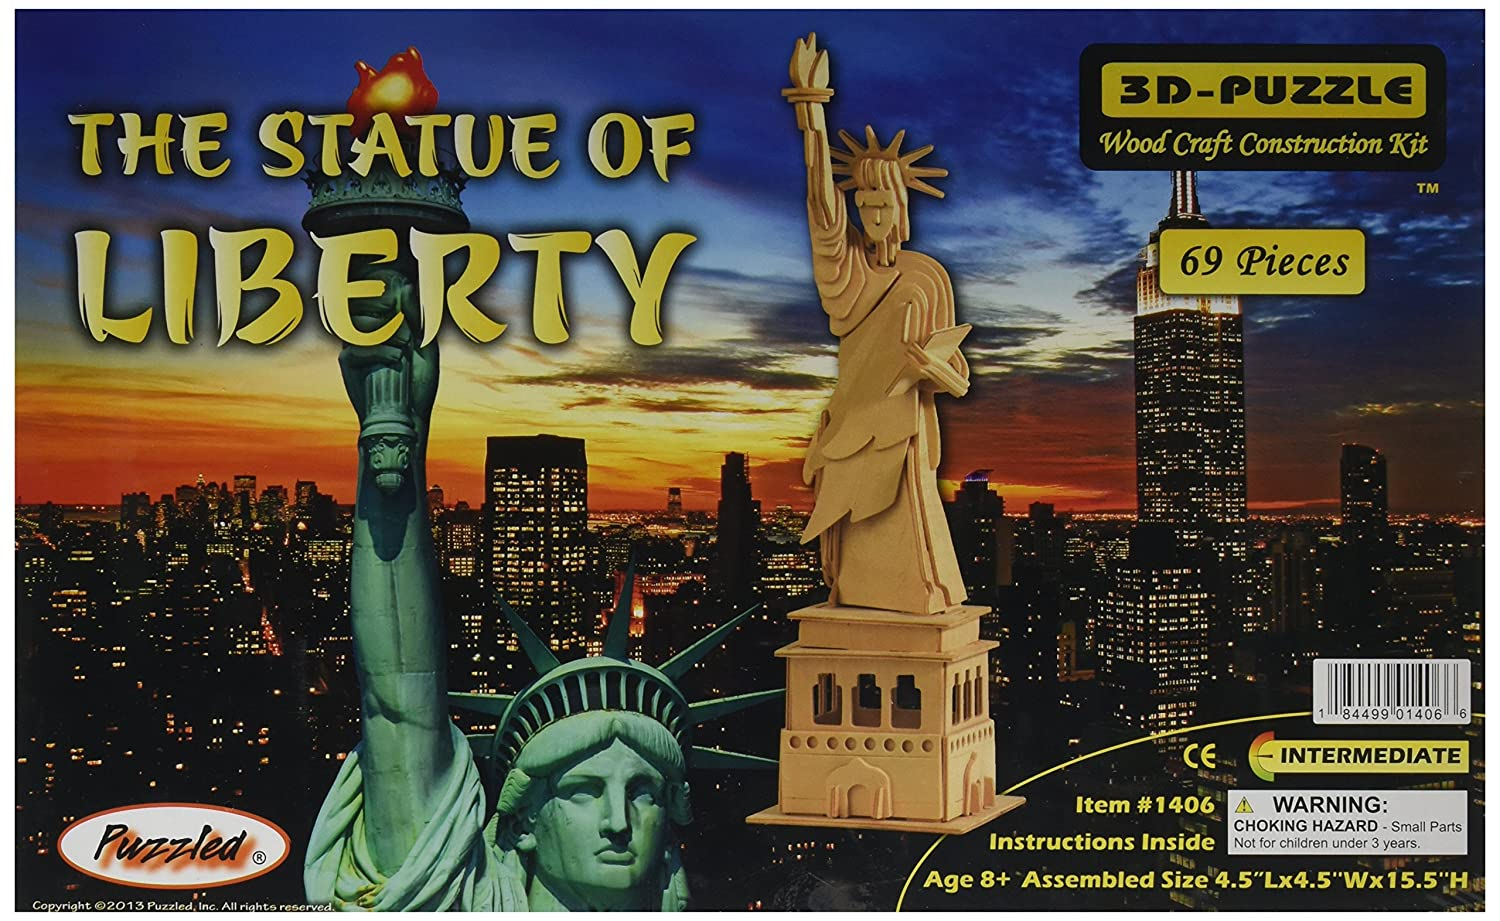 Puzzled The Statue Of Liberty Wooden 3D Puzzle Construction Kit